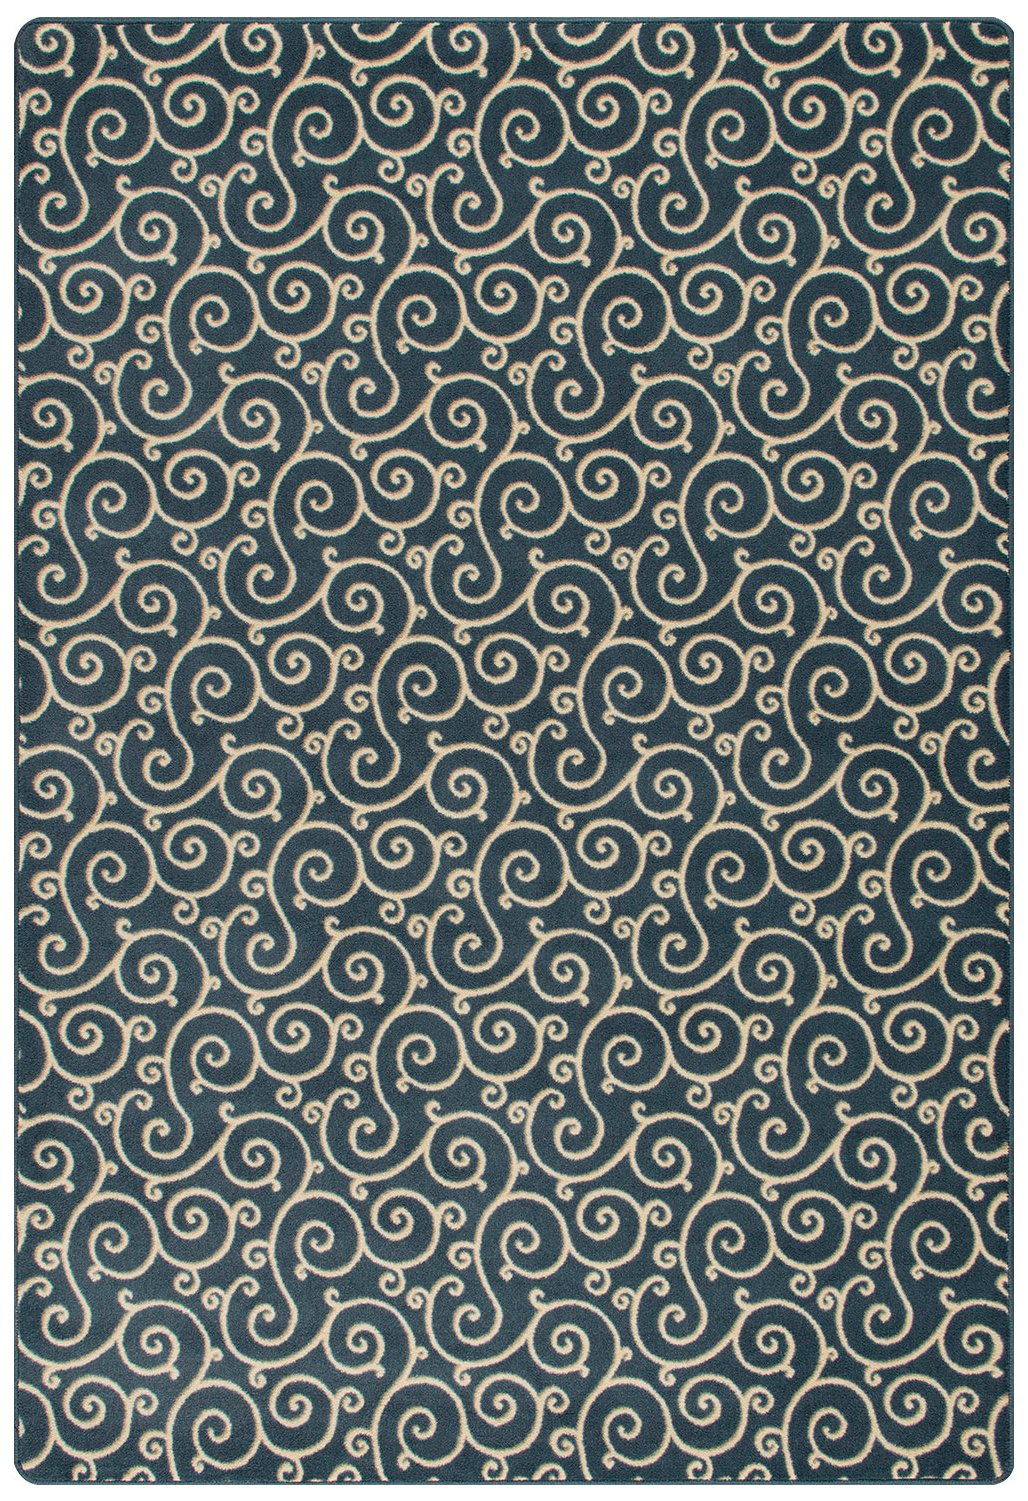 Milliken 4000126468 Imagine Figurative Collection Lyrical Area Rug, 2'8'' x 3'10'', Imperial Blue by Milliken